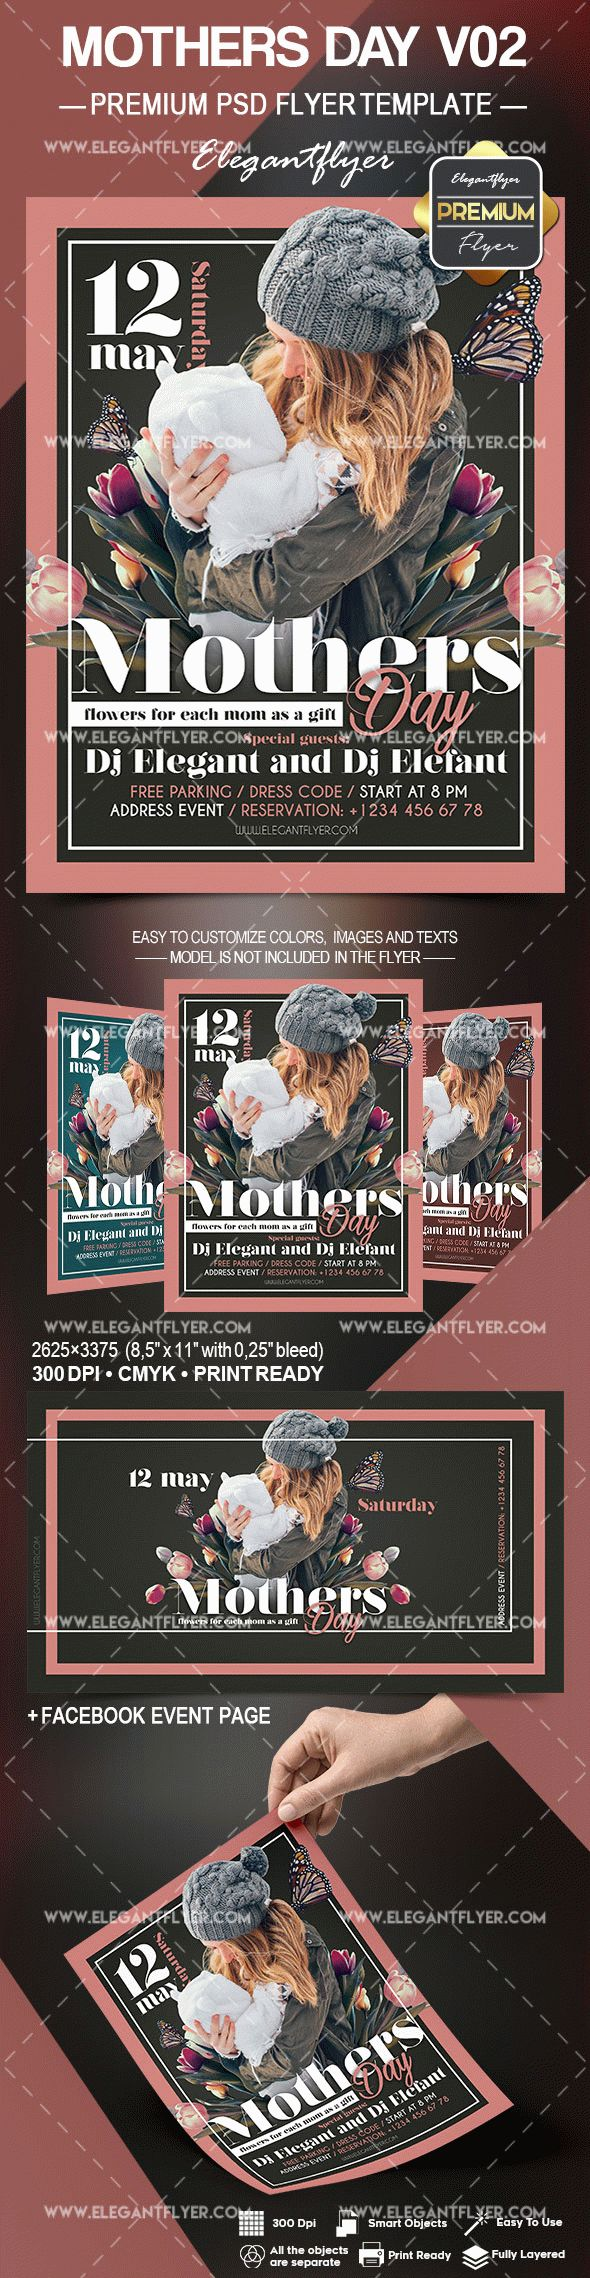 Template for Mothers Day V02